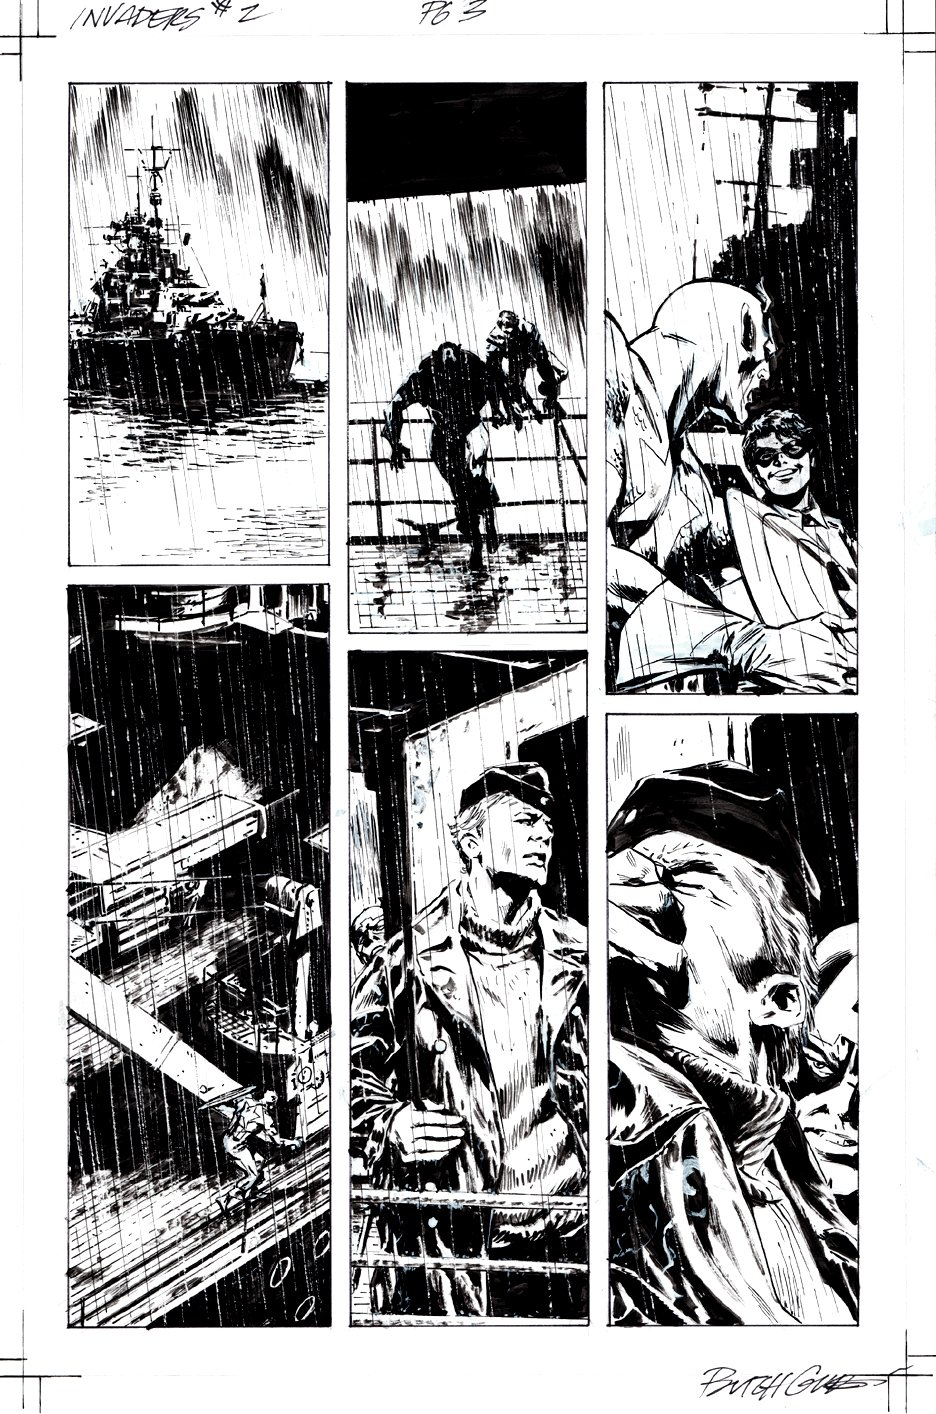 Invaders #2 p 3 (Cap & Bucky Take over a Ship!) 2018